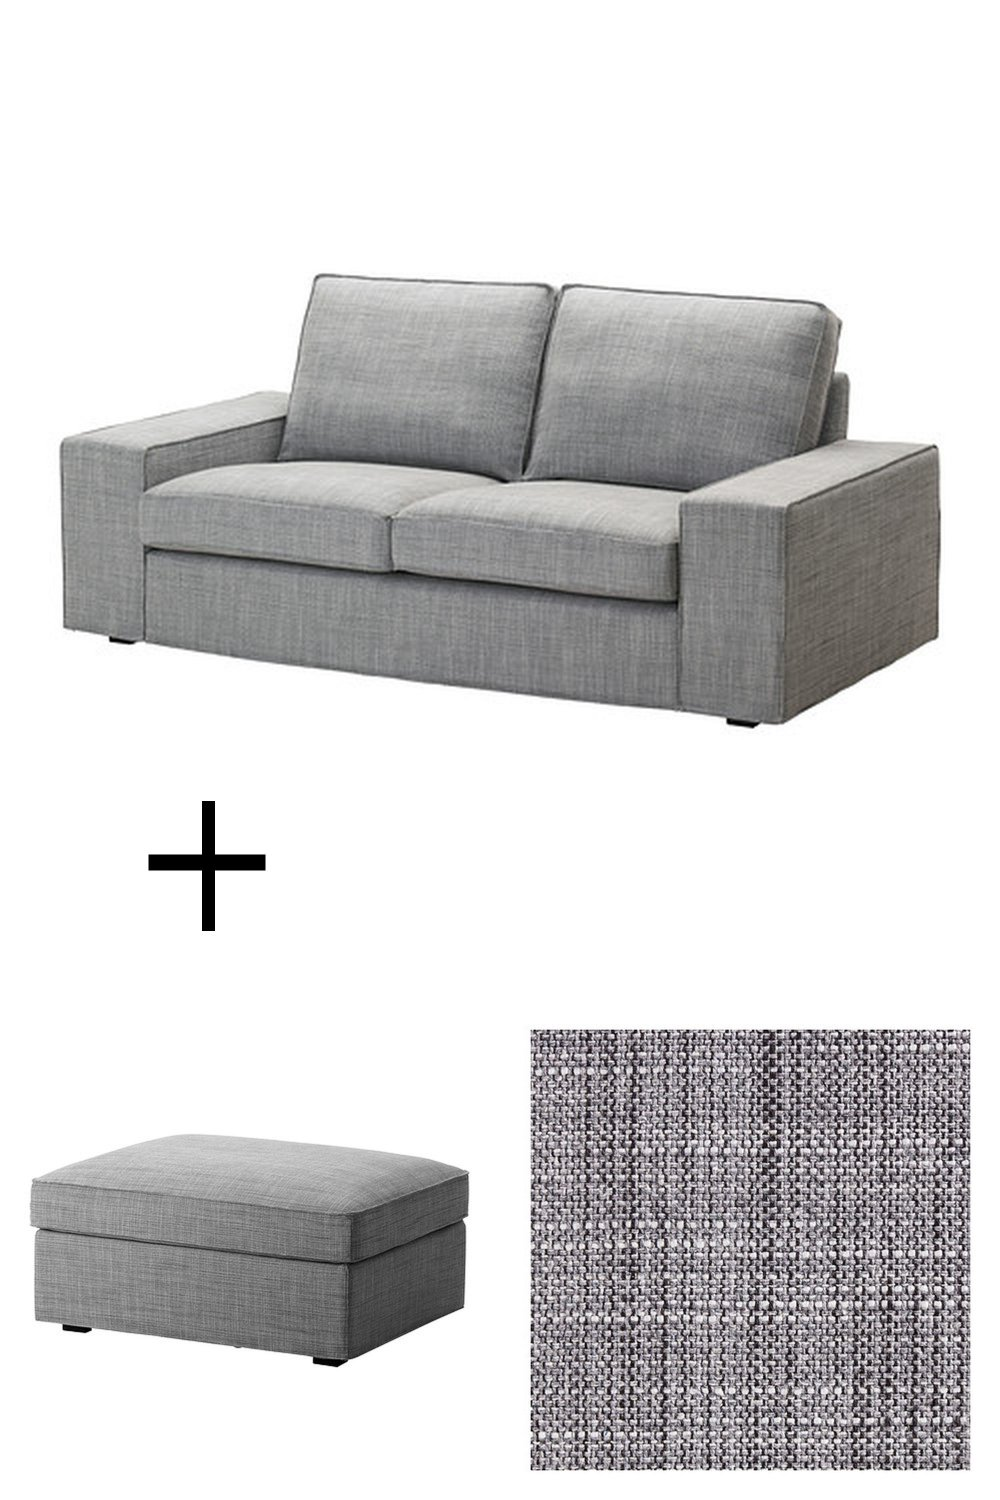 ikea kivik 2 seat sofa and footstool slipcovers loveseat ottoman covers isunda gray grey. Black Bedroom Furniture Sets. Home Design Ideas